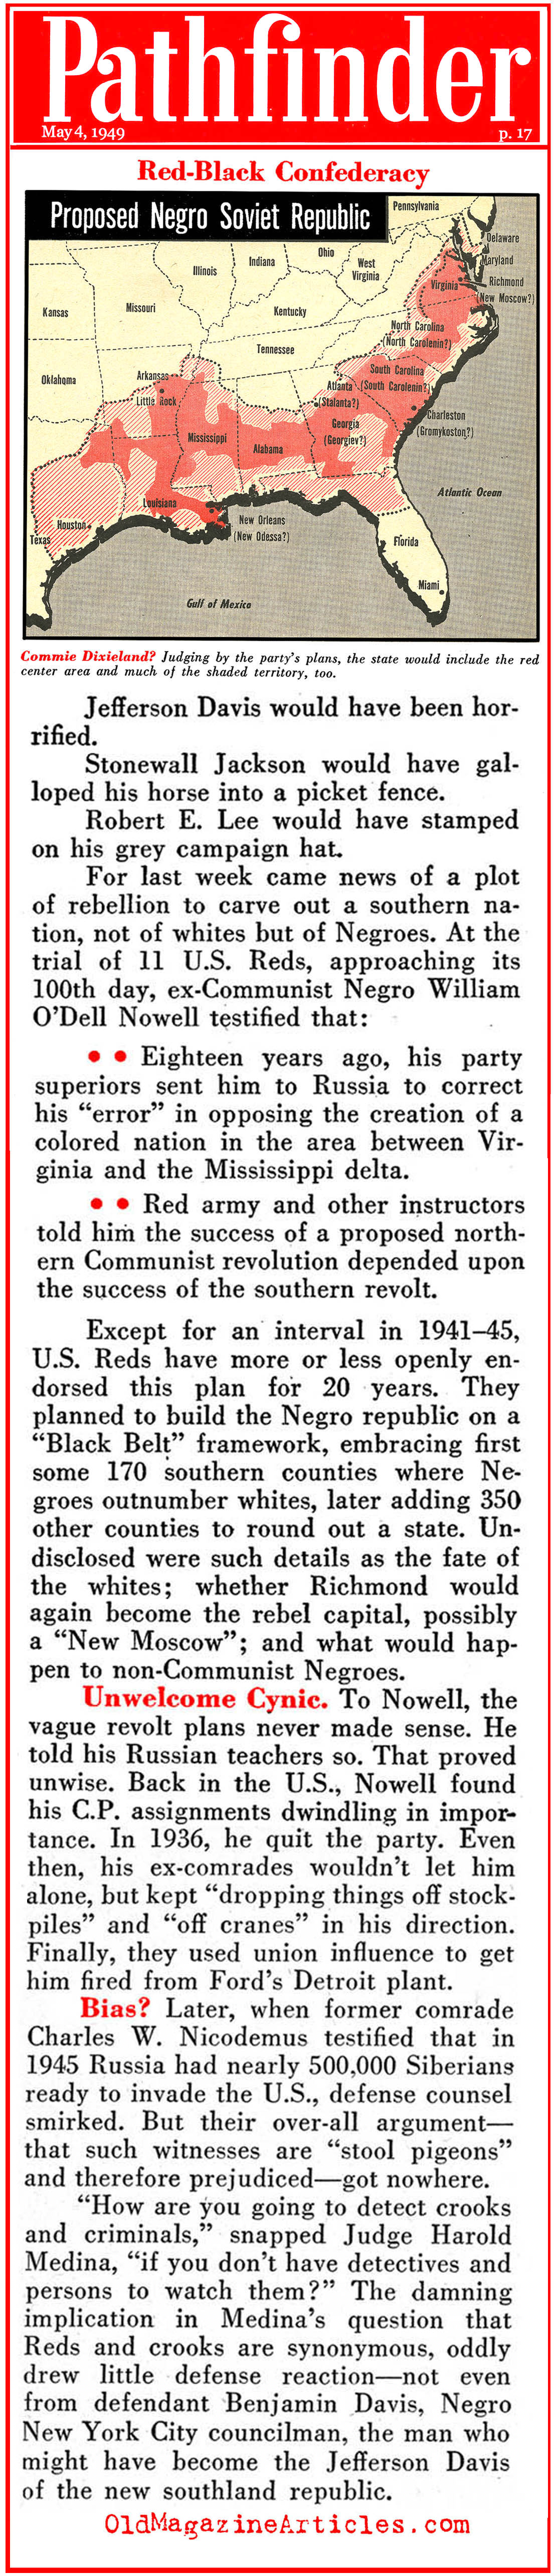 Soviet Plans to Dally In U.S. Identity Politics  (Pathfinder Magazine, 1949)